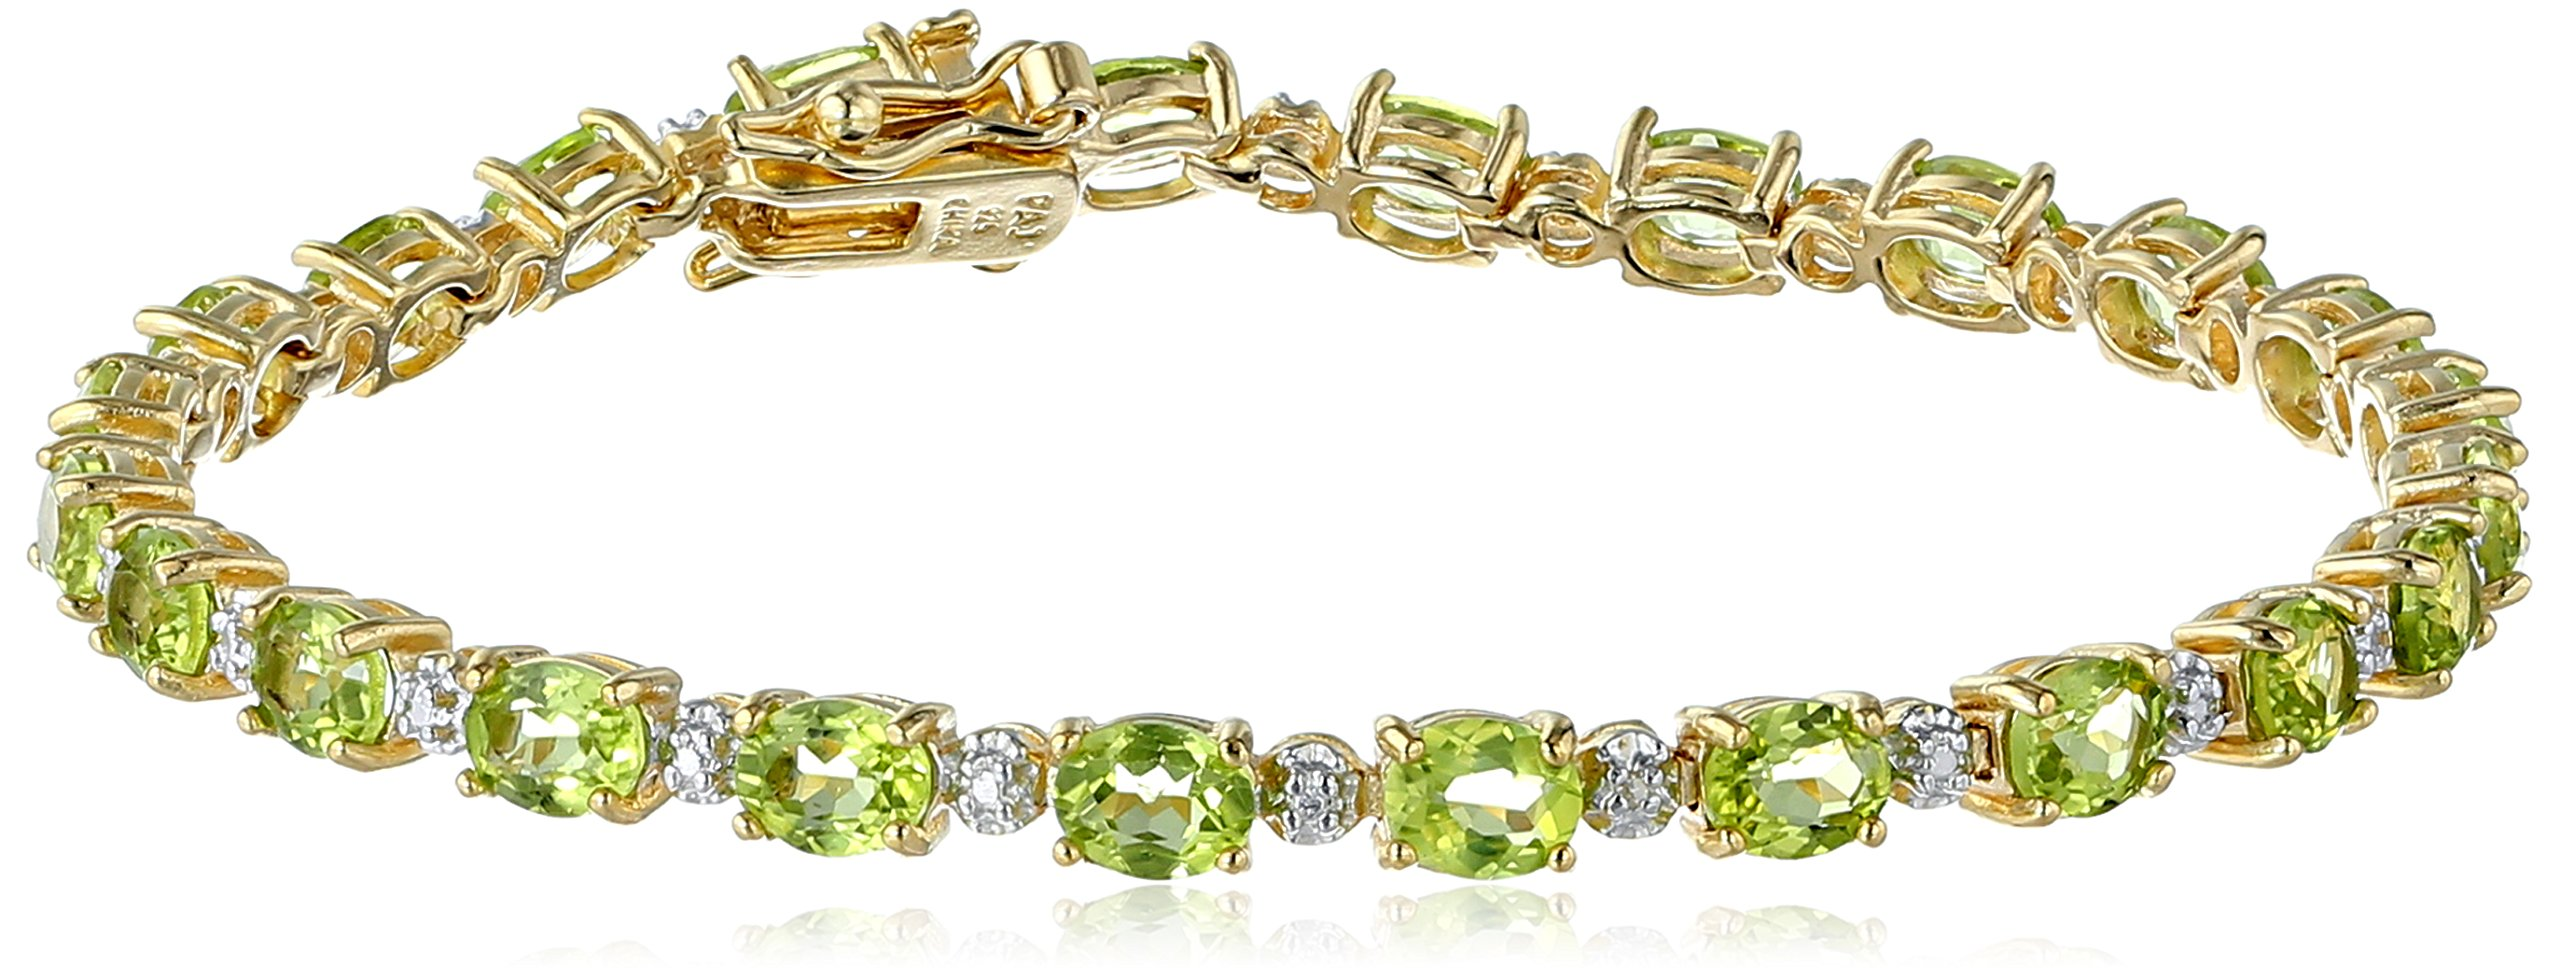 18k Yellow Gold Plated Sterling Silver Genuine Peridot Oval Cut 5x4mm and Diamond Accent Tennis Bracelet, 7.25'' by Amazon Collection